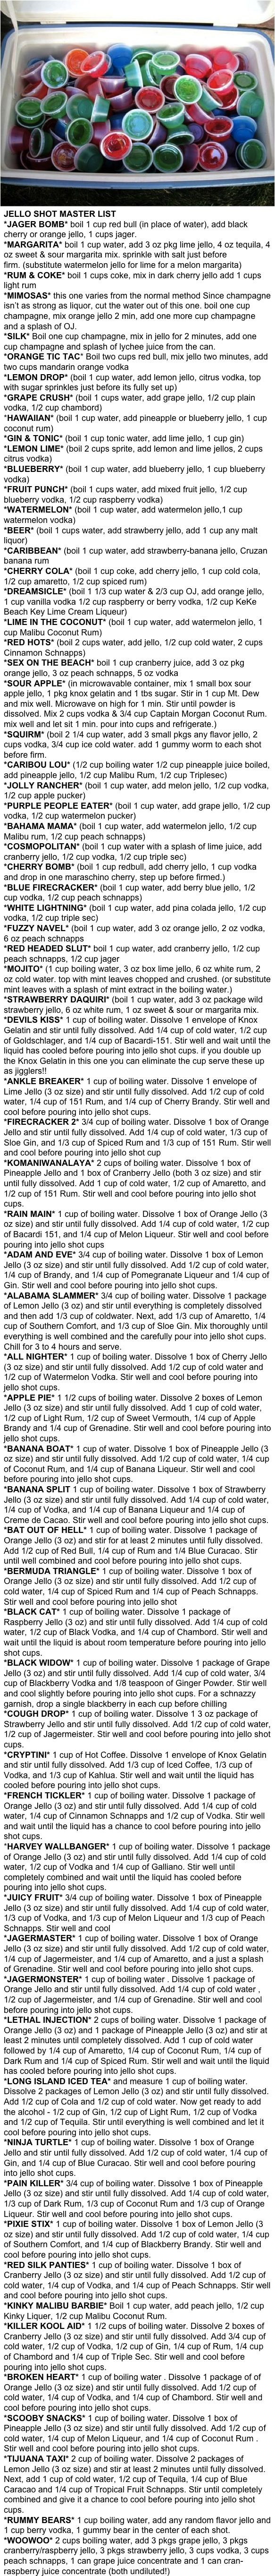 Jello Shots Master List. this. is. AWESOME.